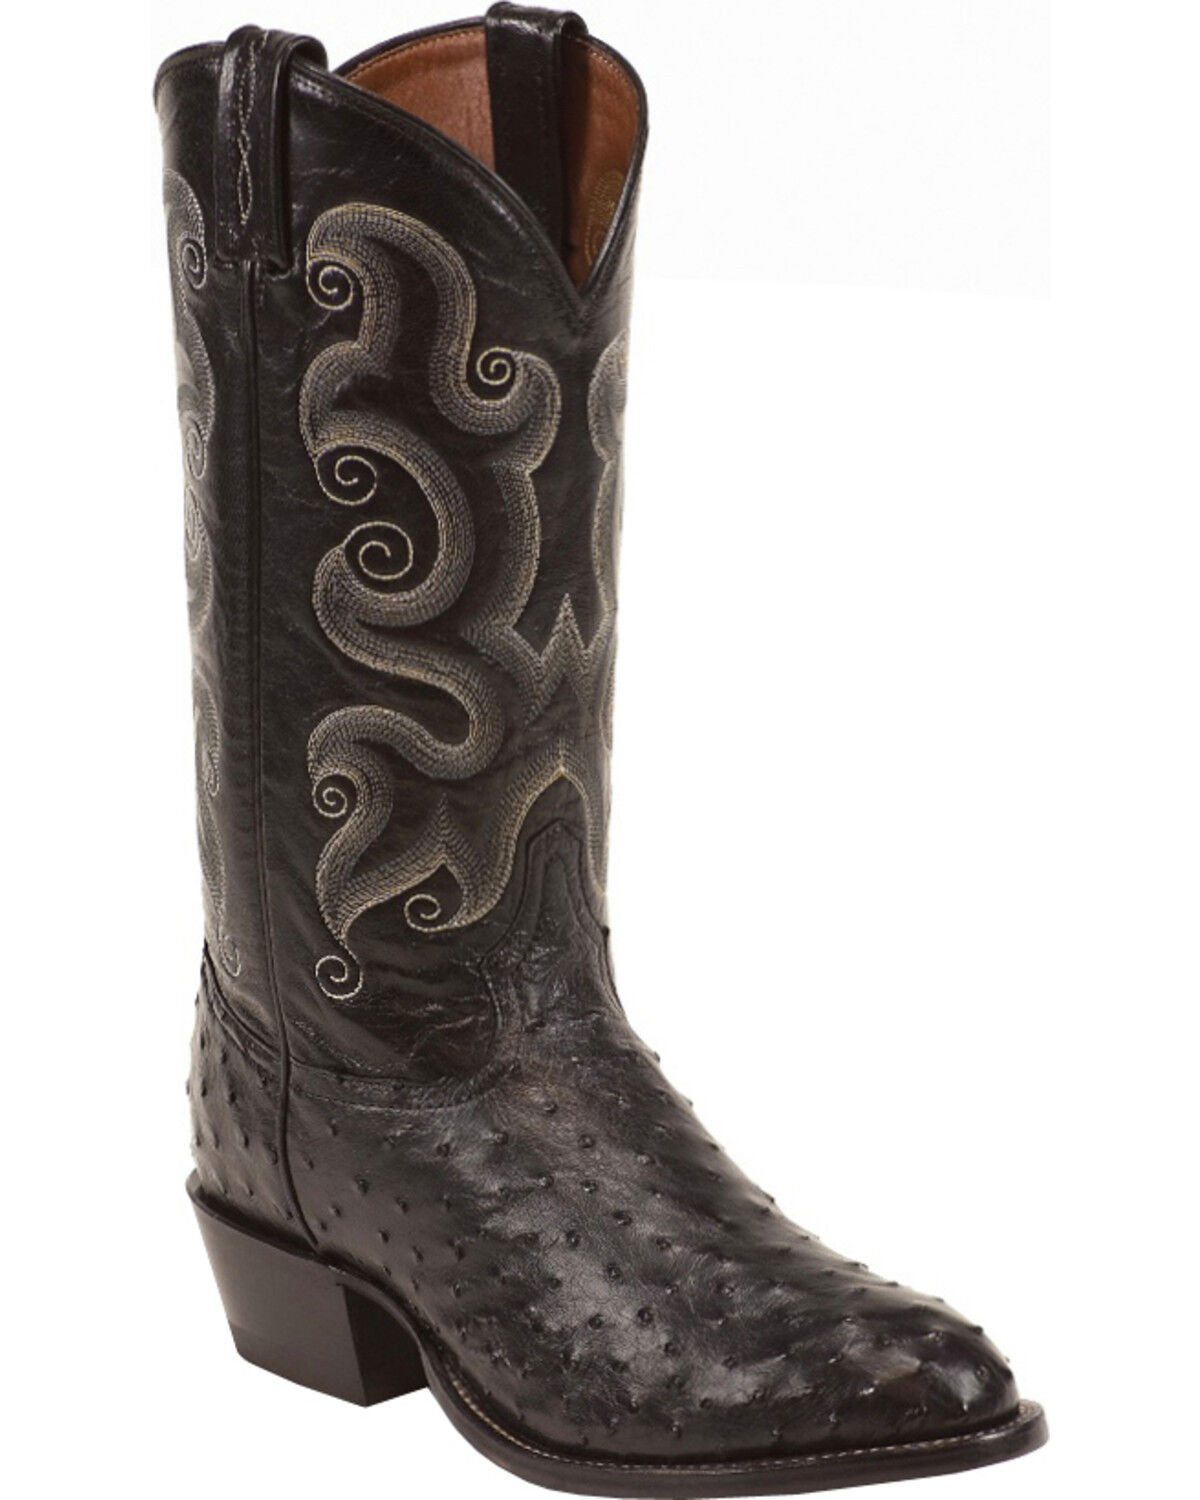 Men's Clearance Boots - Boot Barn